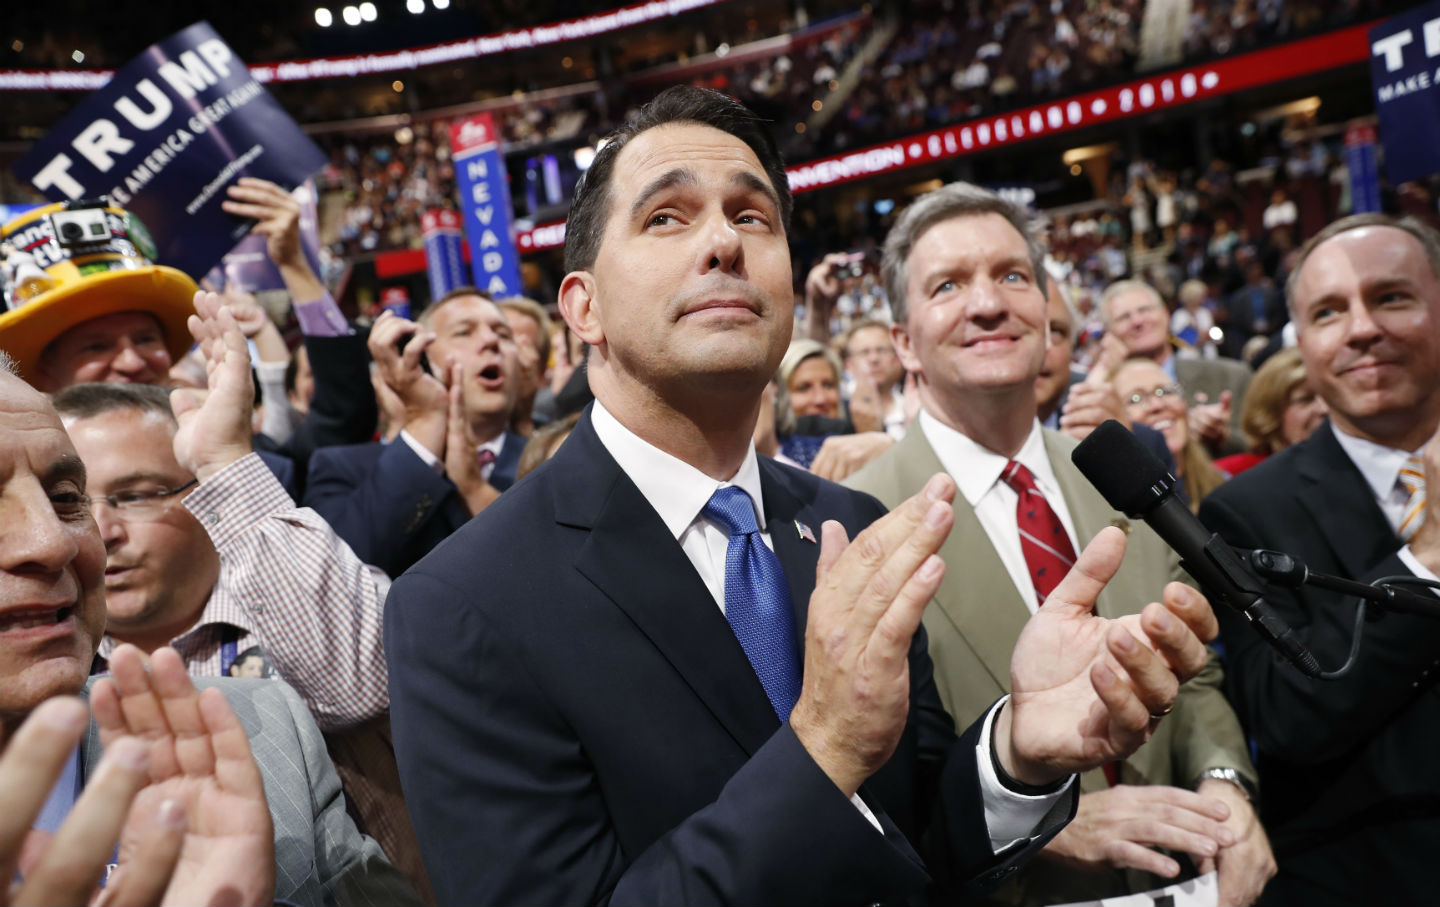 Scott Walker at RNC